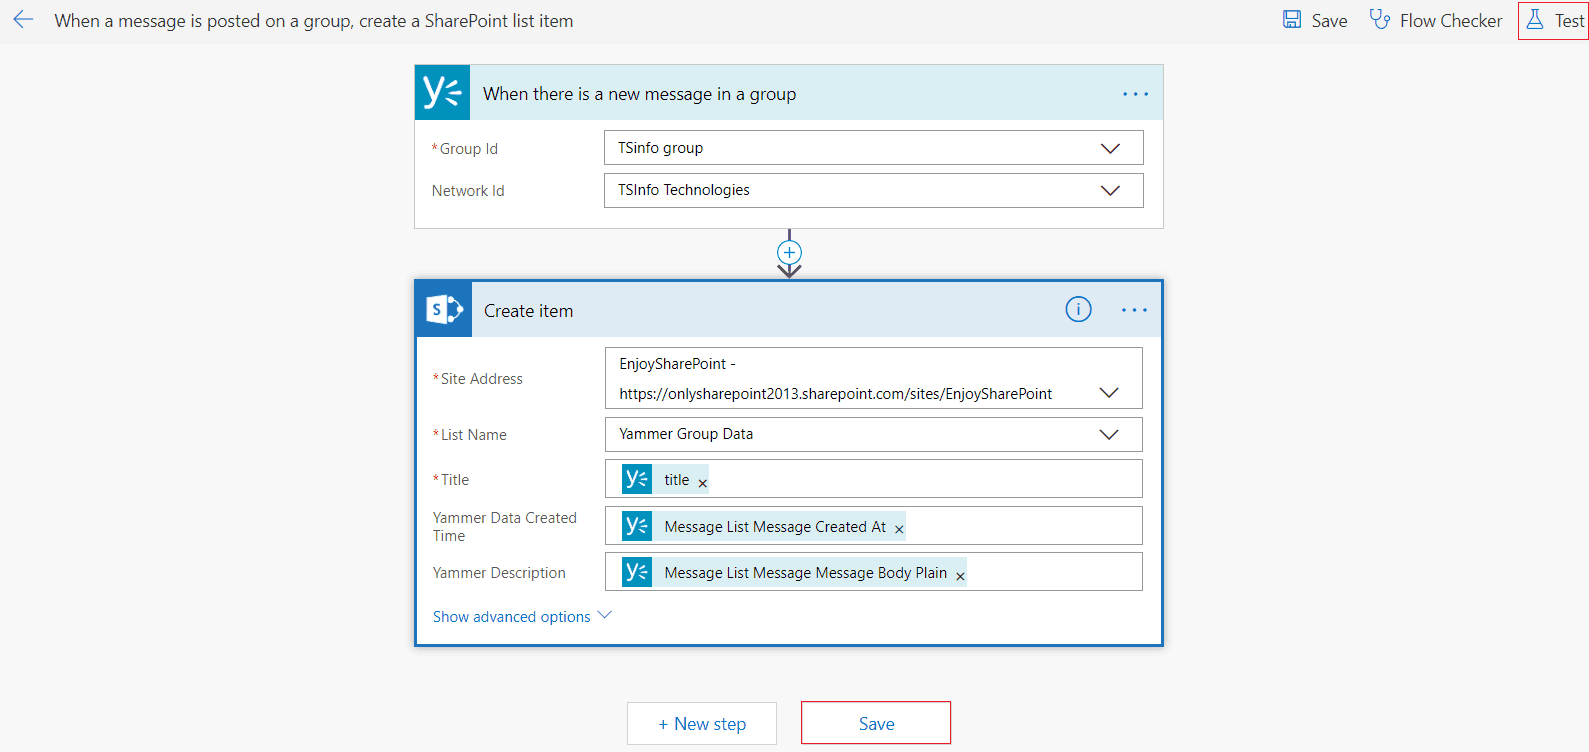 When-a-message-is-posted-on-a-group,-create-a-SharePoint-list-item-microsoft-flow